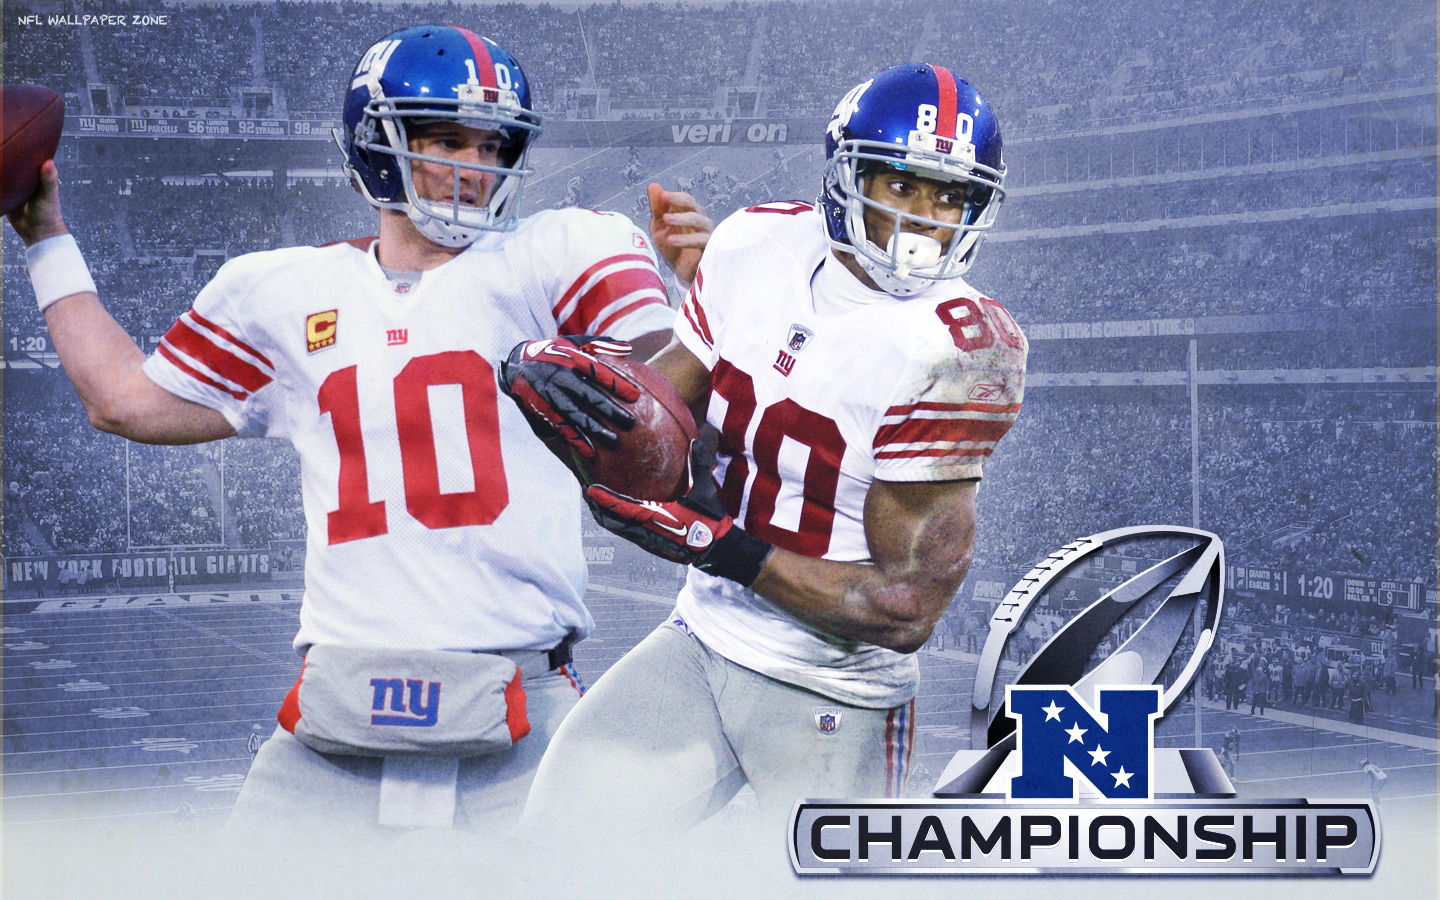 New York Giants NFC Championship Wallpaper 2012